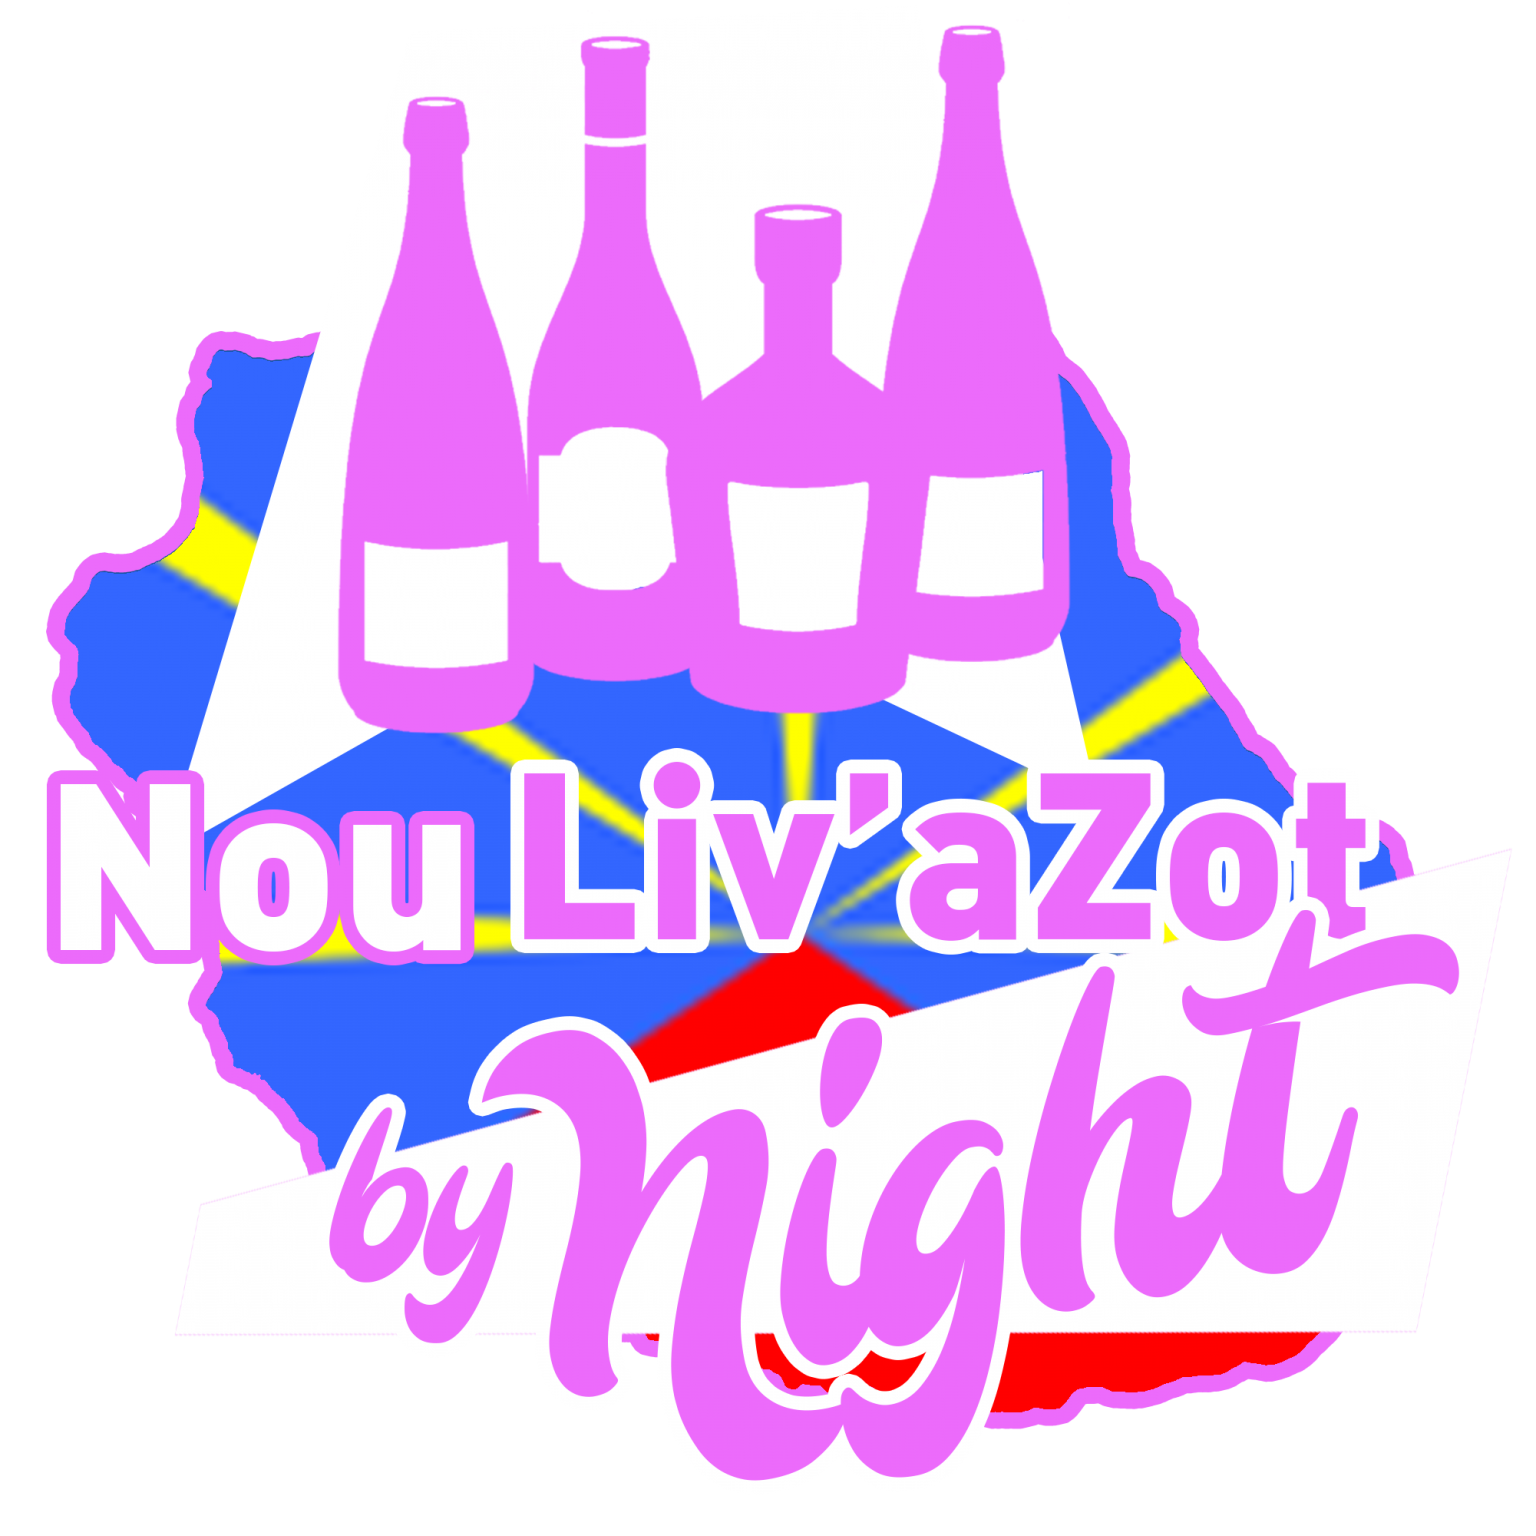 https://noulivazotapero.fr/wp-content/uploads/2021/04/NLZ-Logo-by-Night-OFF-1536x1536.png